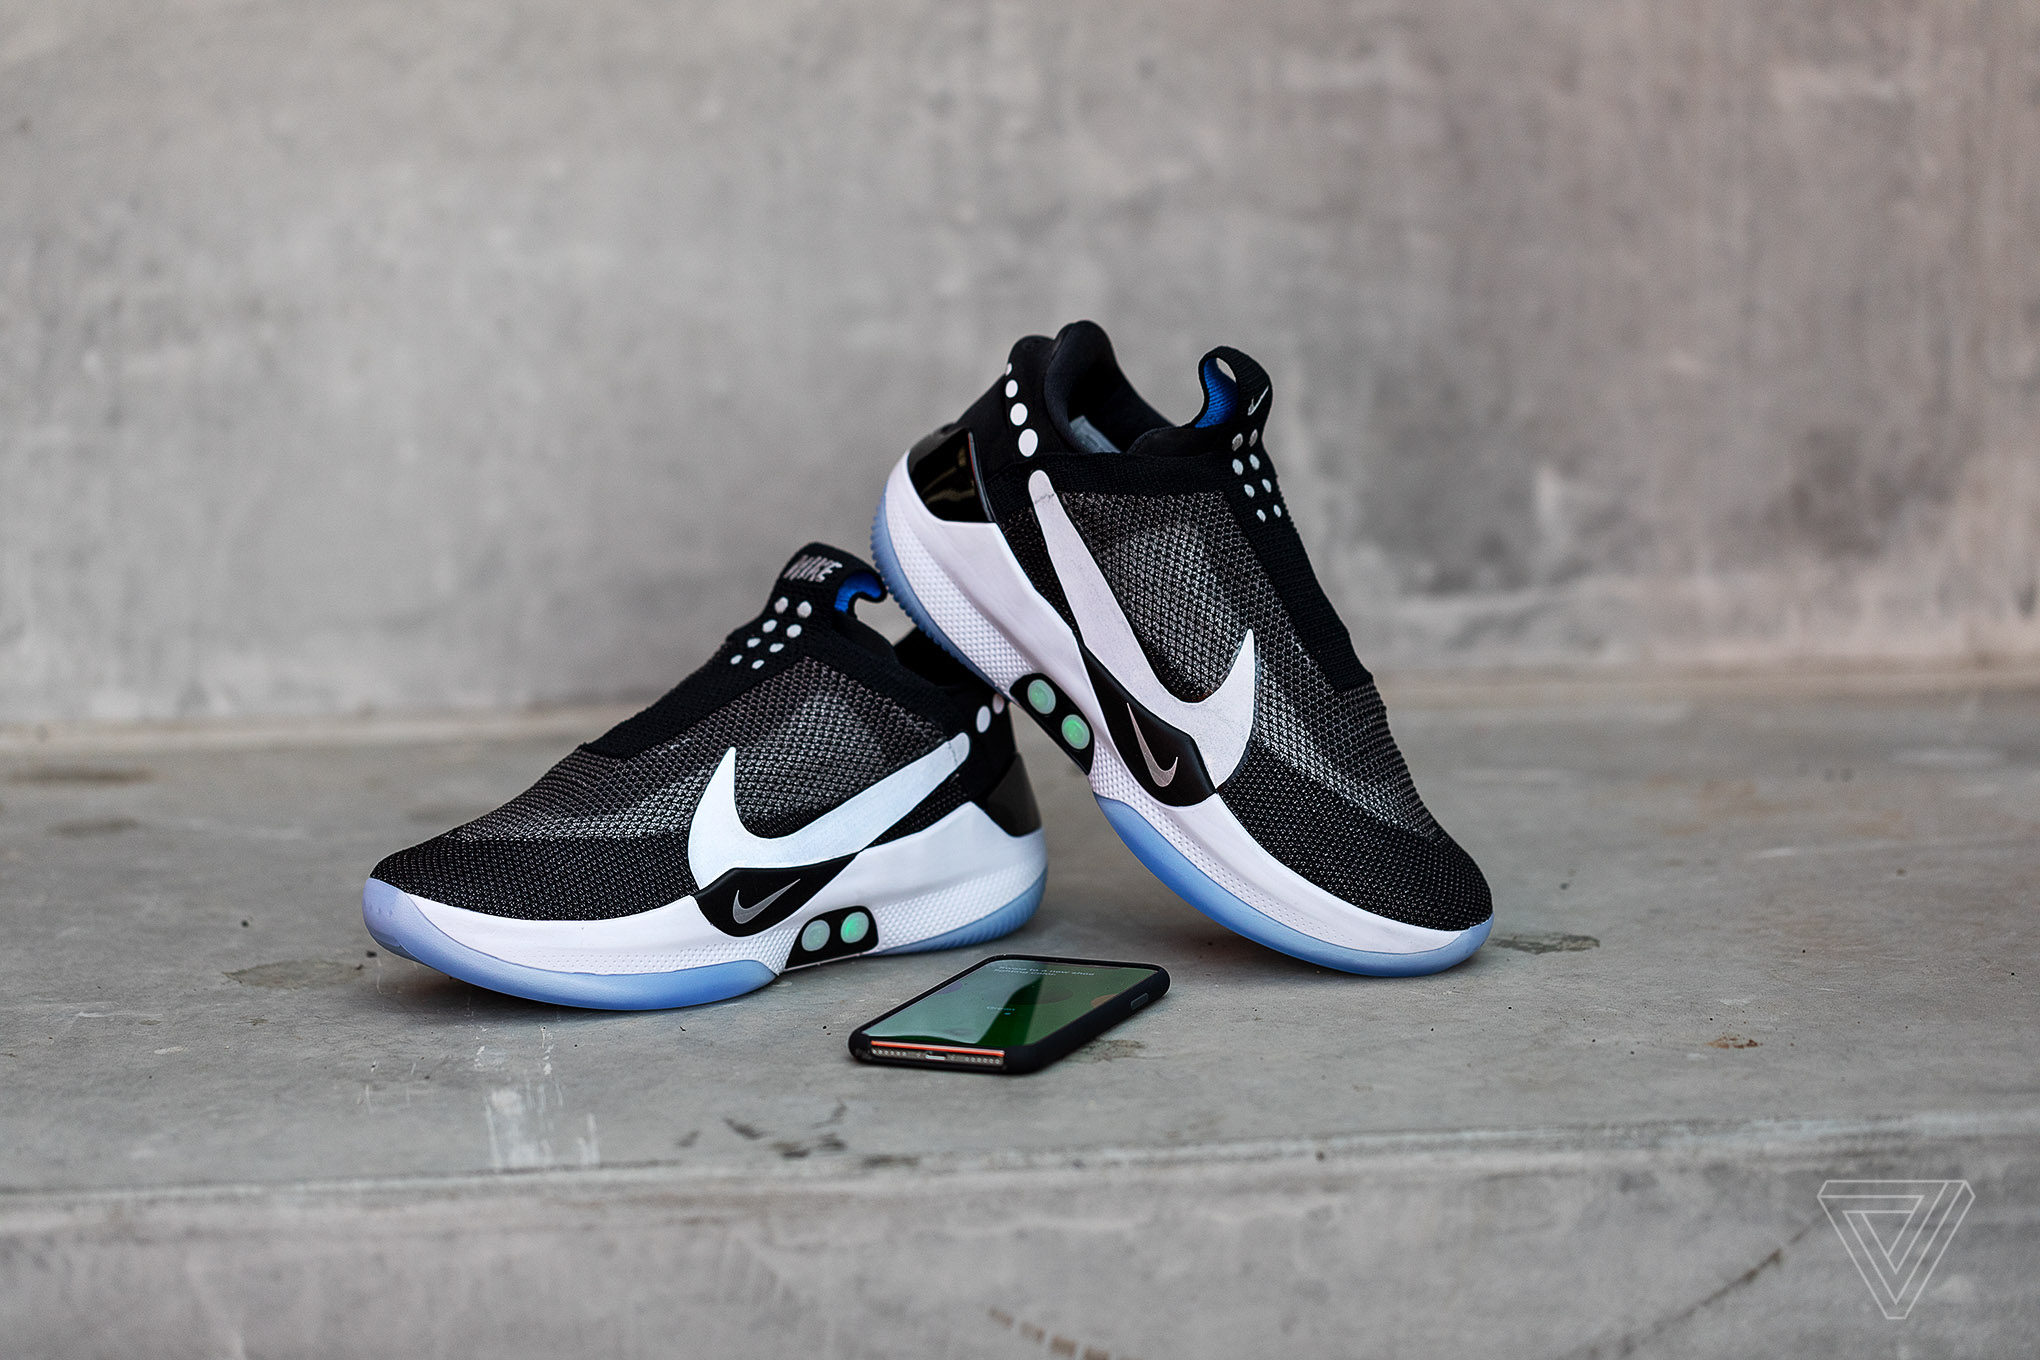 d9d2128a3a9 Nike s Adapt BB self-lacing sneakers let you tie your shoes from an ...